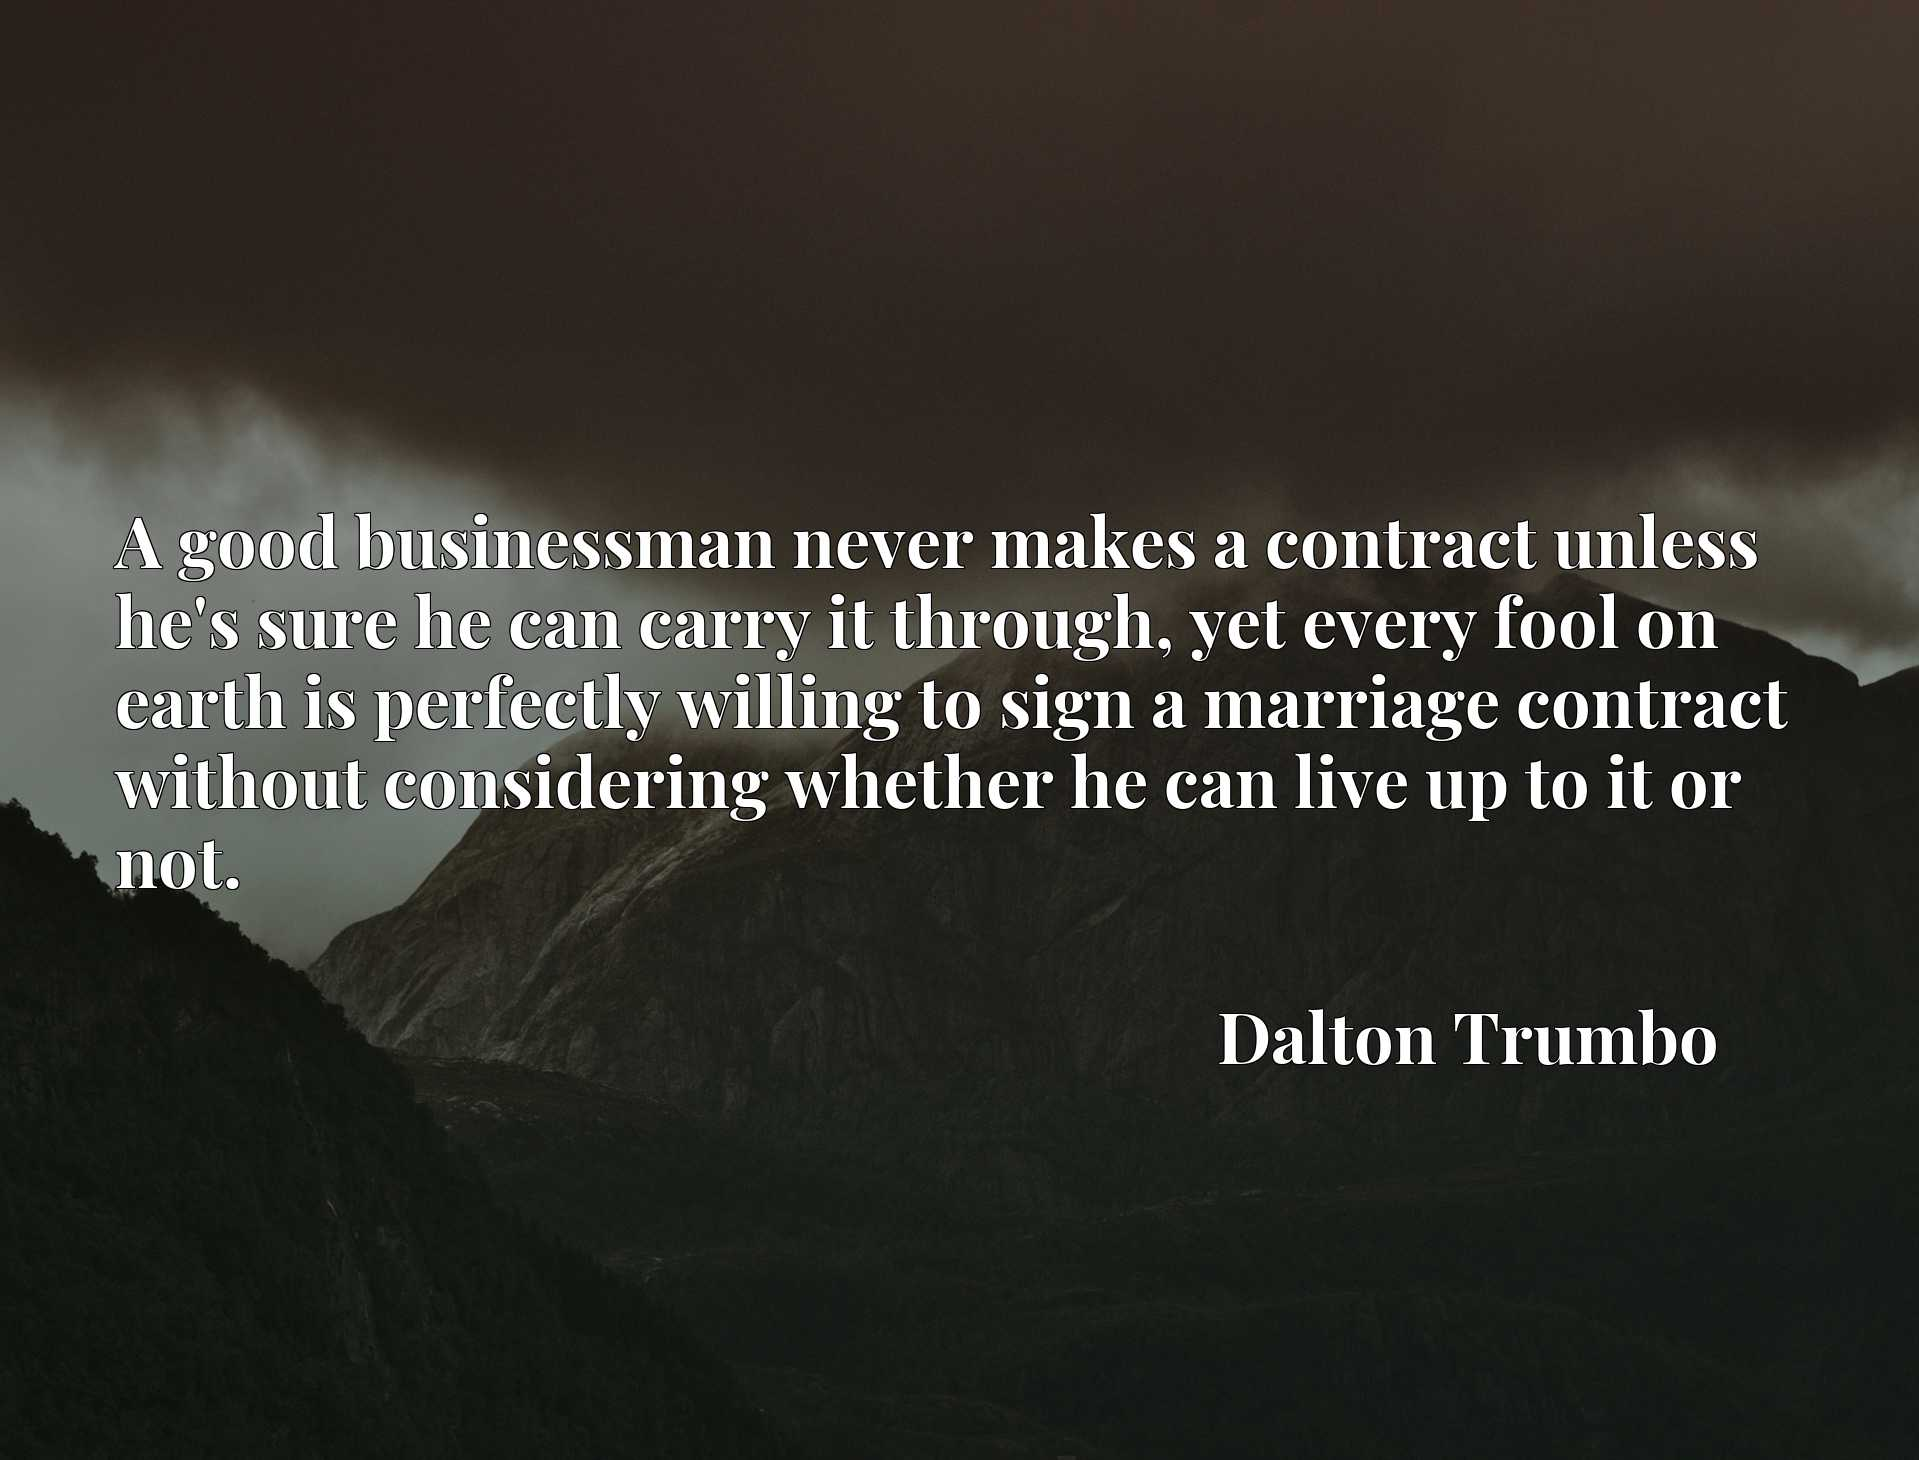 A good businessman never makes a contract unless he's sure he can carry it through, yet every fool on earth is perfectly willing to sign a marriage contract without considering whether he can live up to it or not.